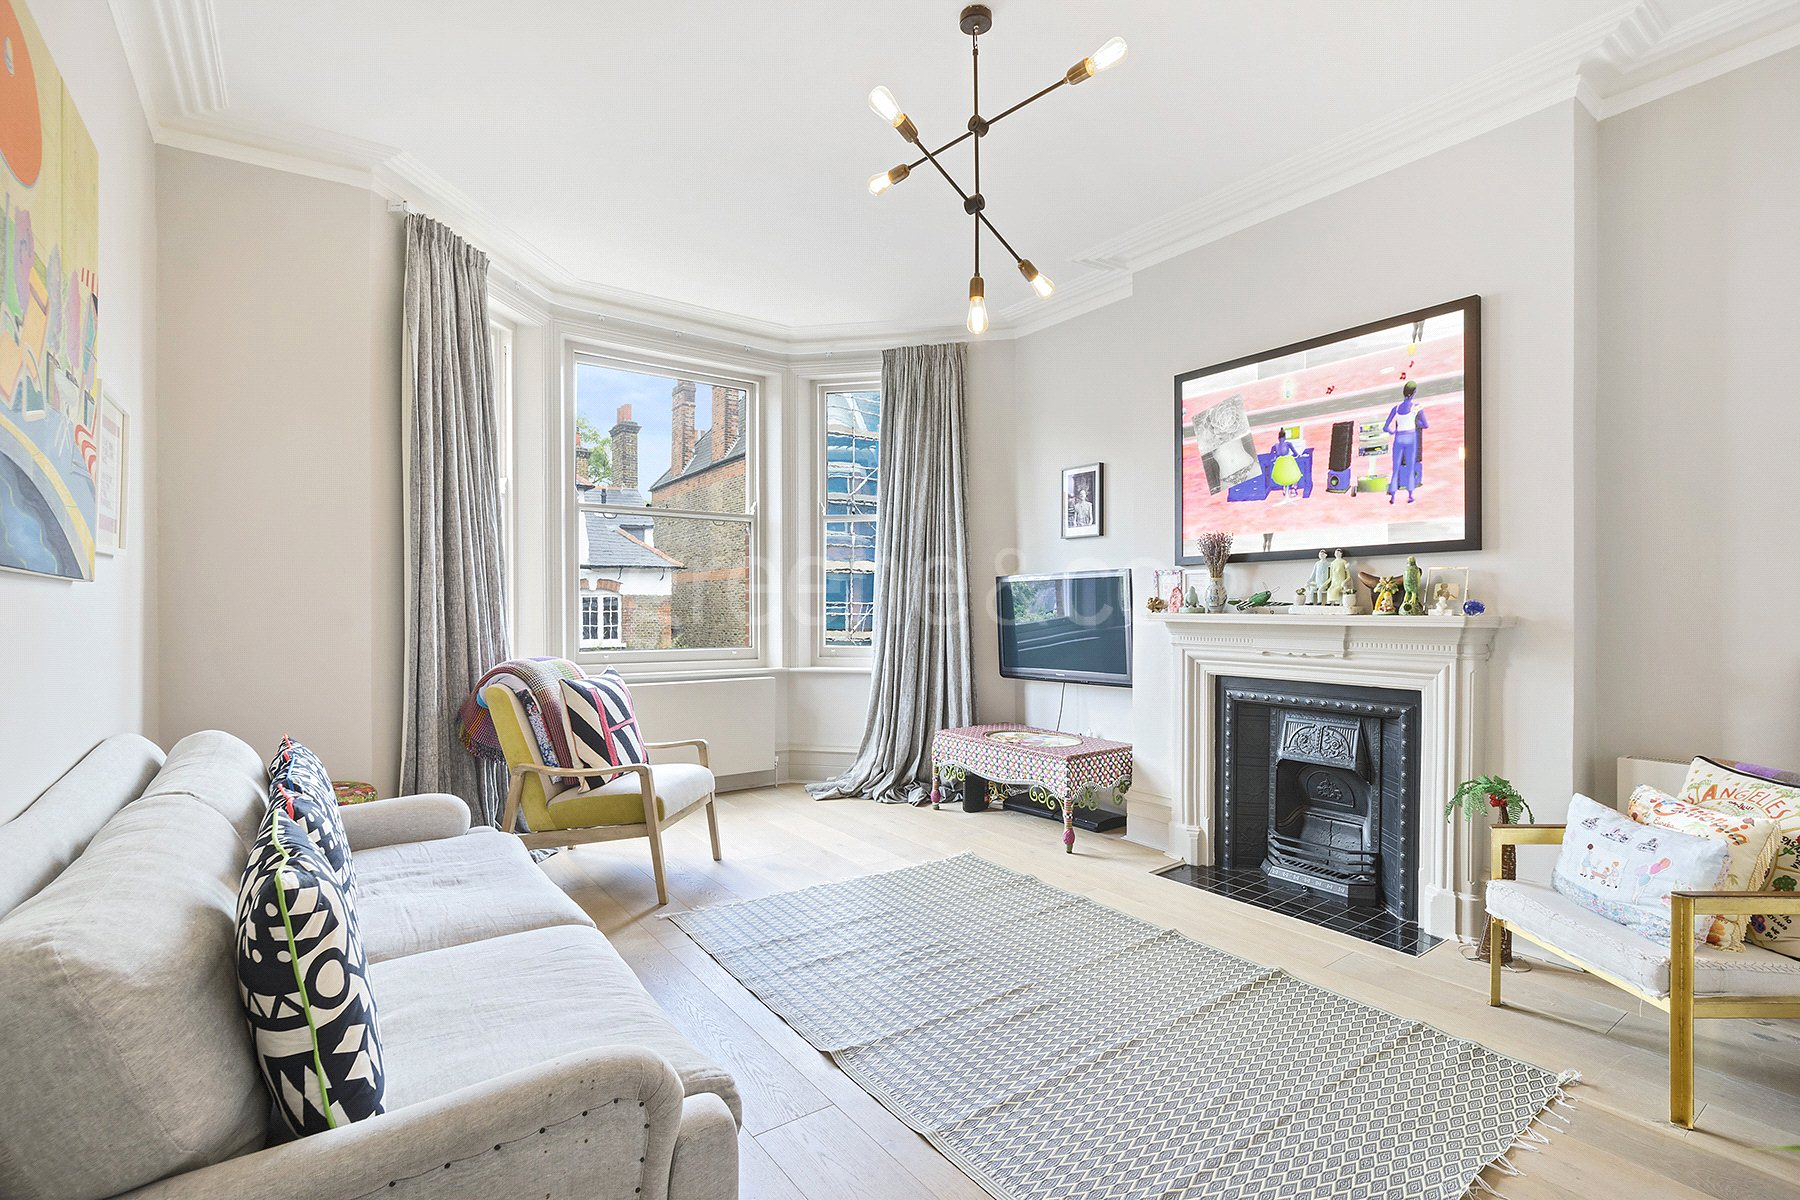 3 Bedrooms House for sale in Antrim Road, Belsize Park, London, NW3